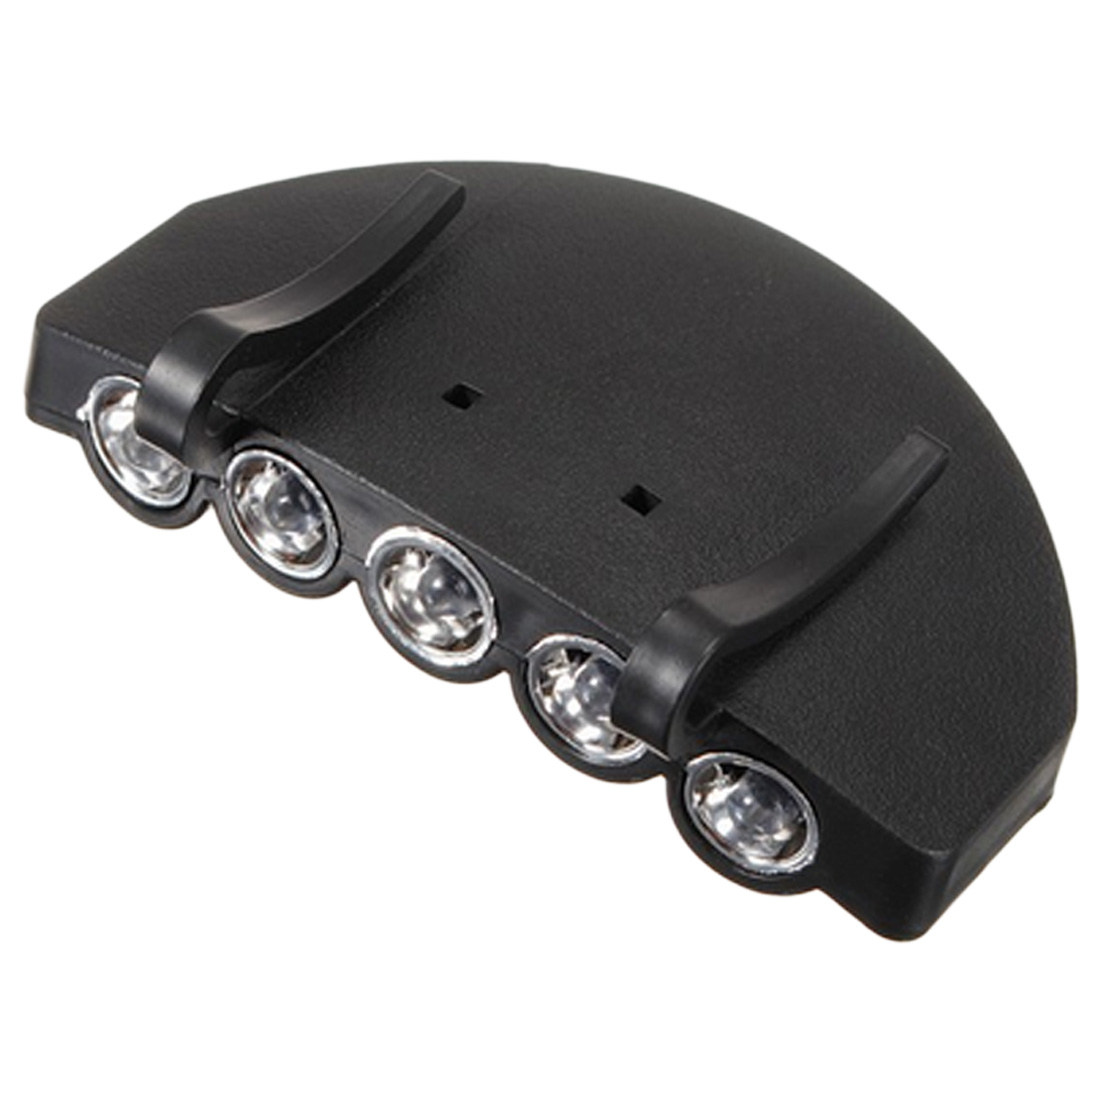 New Outdoor Travel Night Safe And Convenient Headlamps Clip-On 5-LED Head Lights Hands-free Cap Hat Clip Lamp Flash / Steady ON